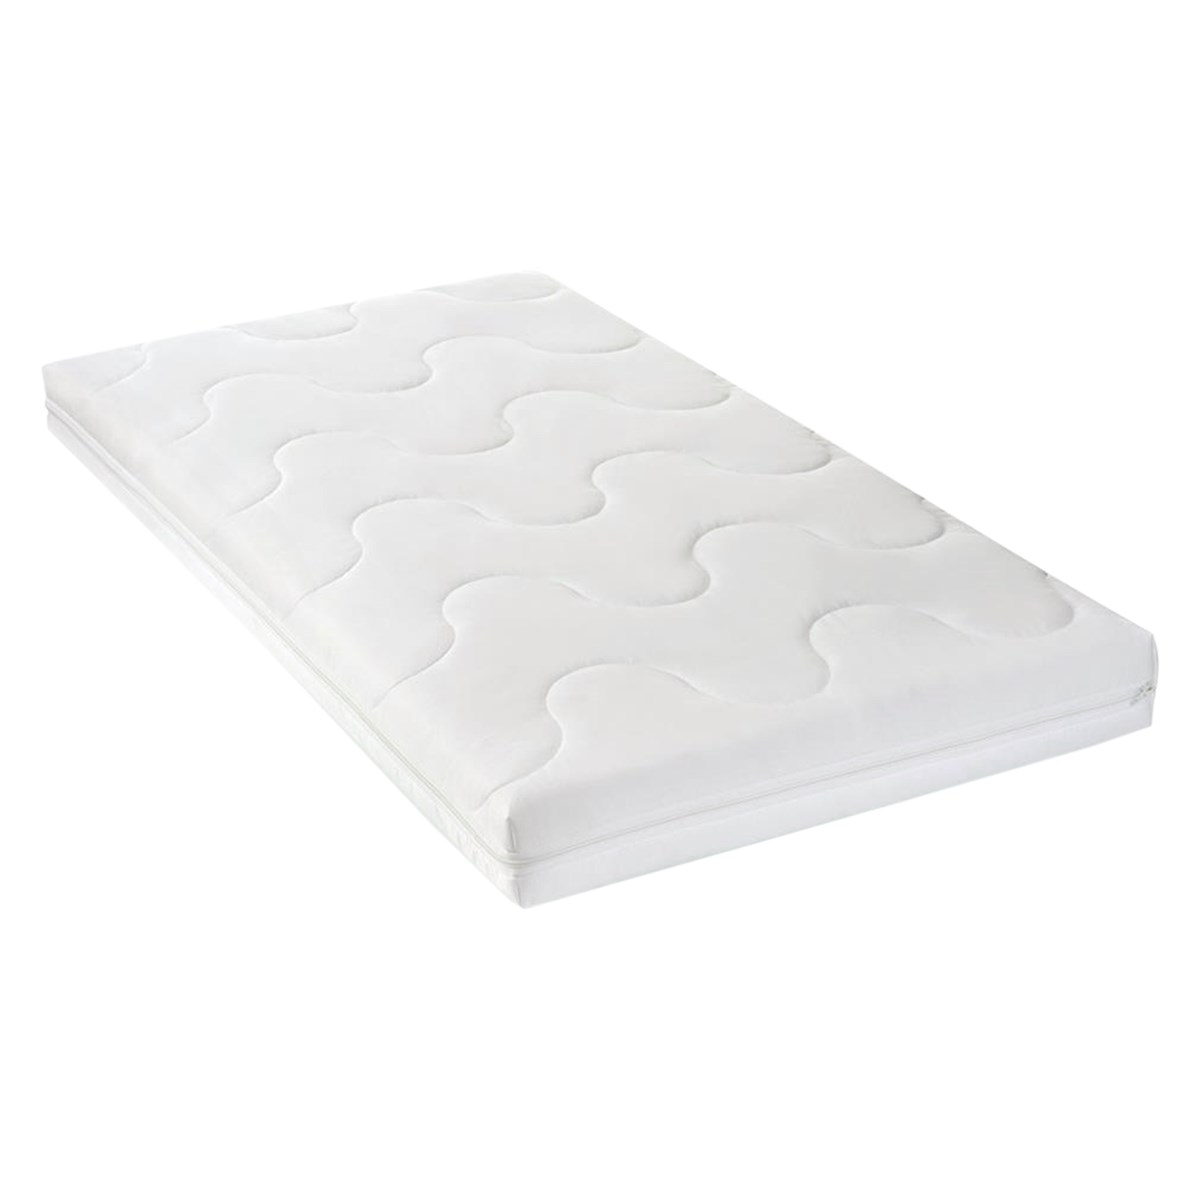 Basson Baby Tiny Oeko-Tex Mattress | AlexandAlexa